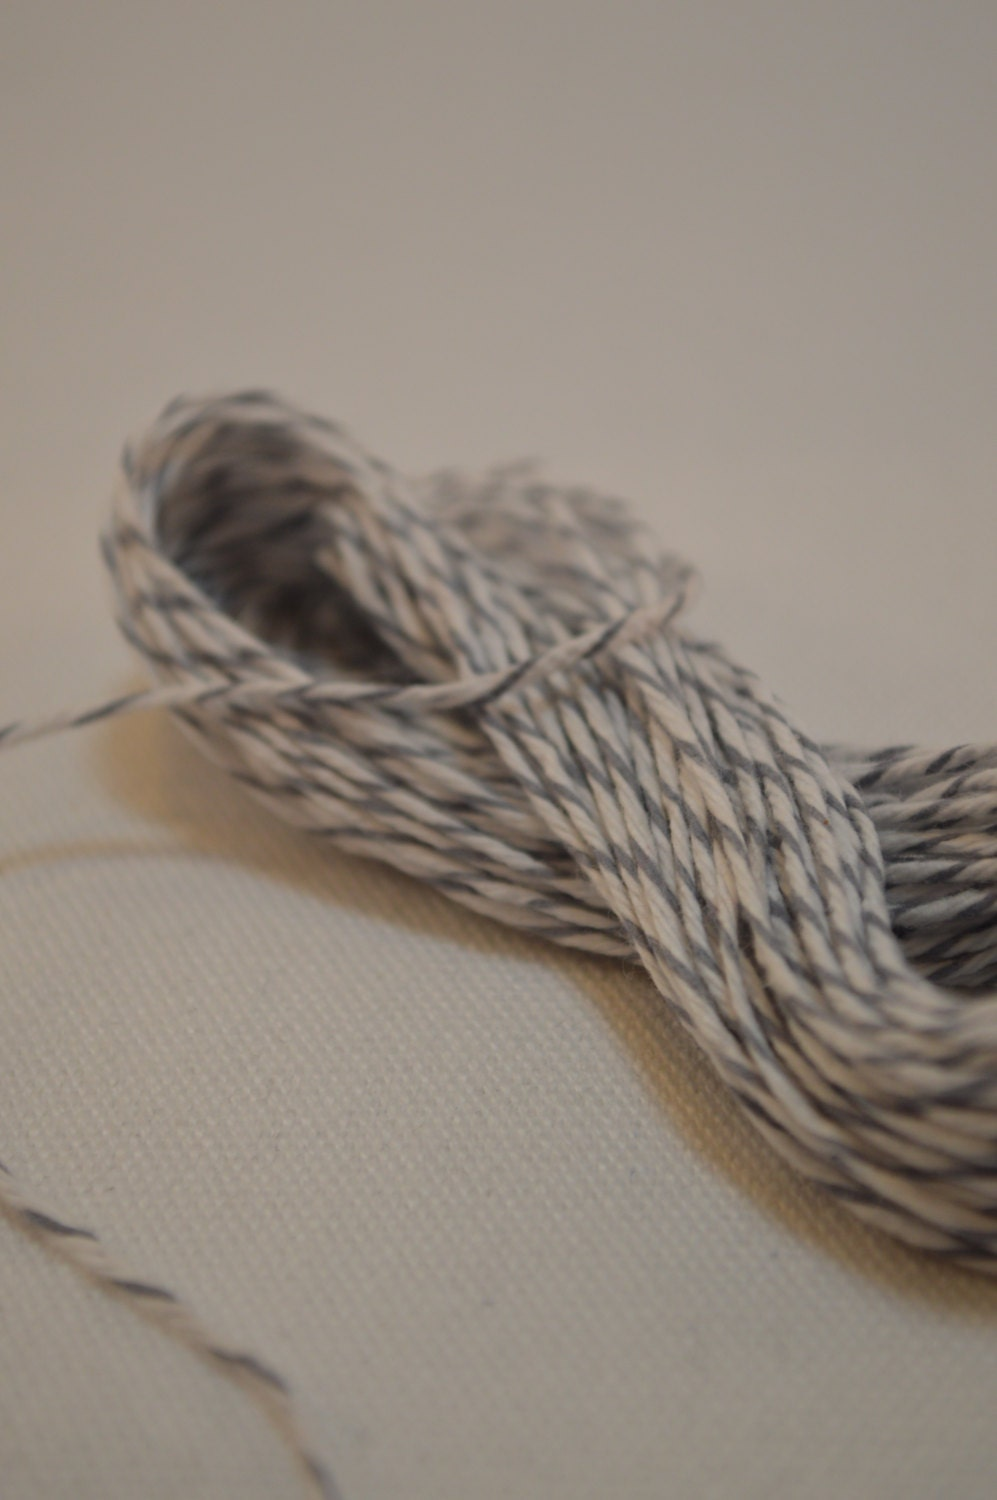 Bakers Divine Twine 100% Cotton 10m (10.9yds) Oyster Grey and White - LoveFromLittleAcorns